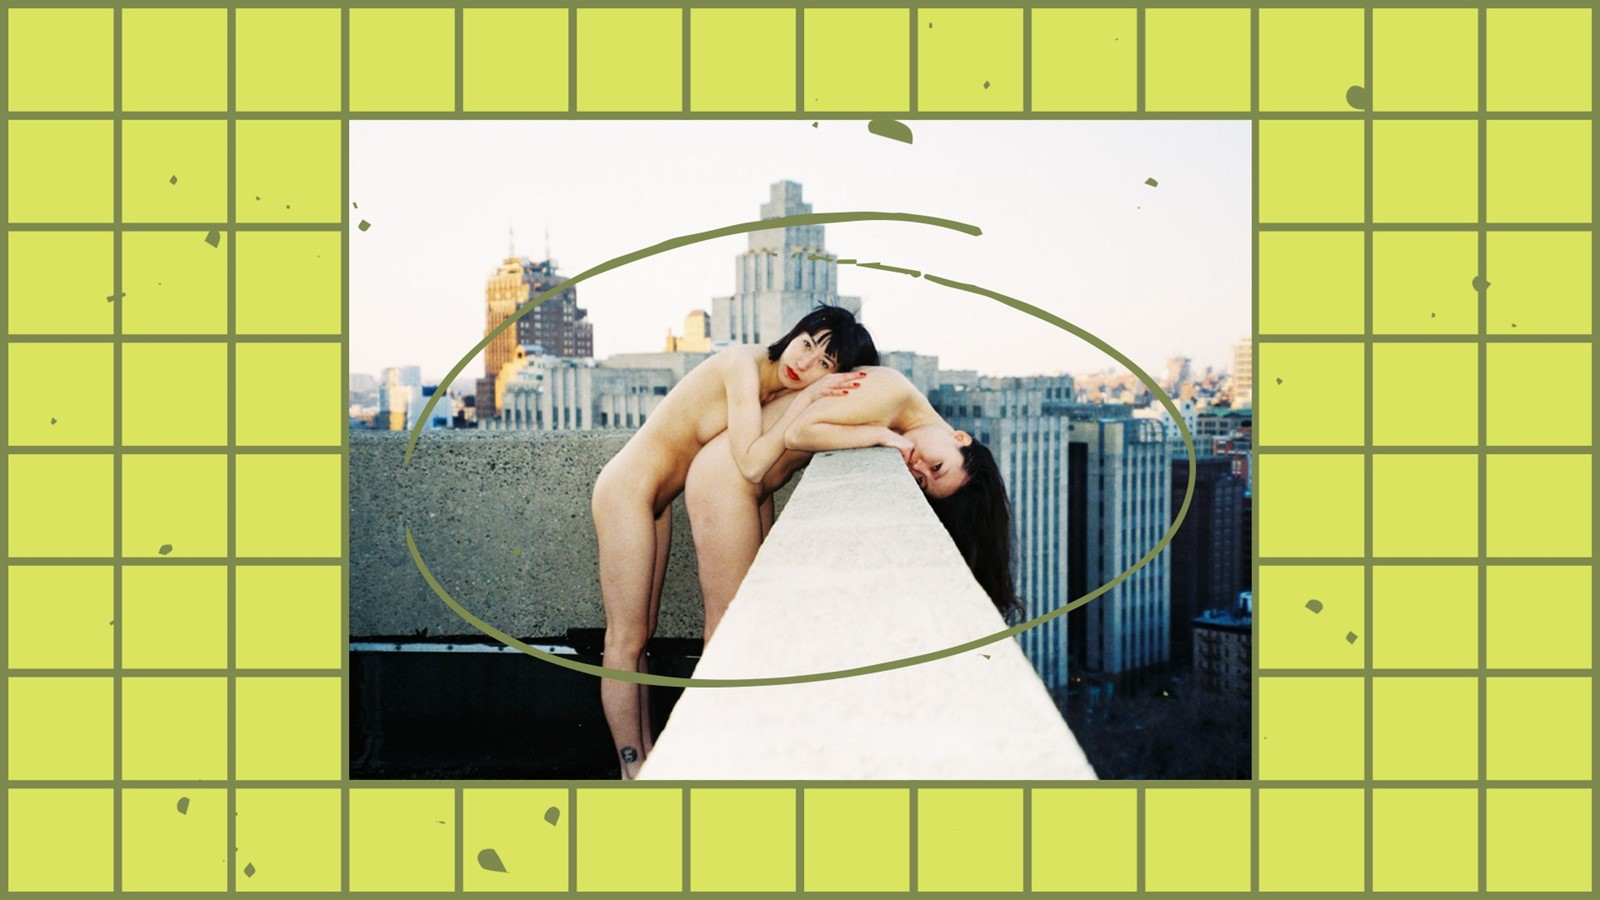 Ren Hang The End of the Decade